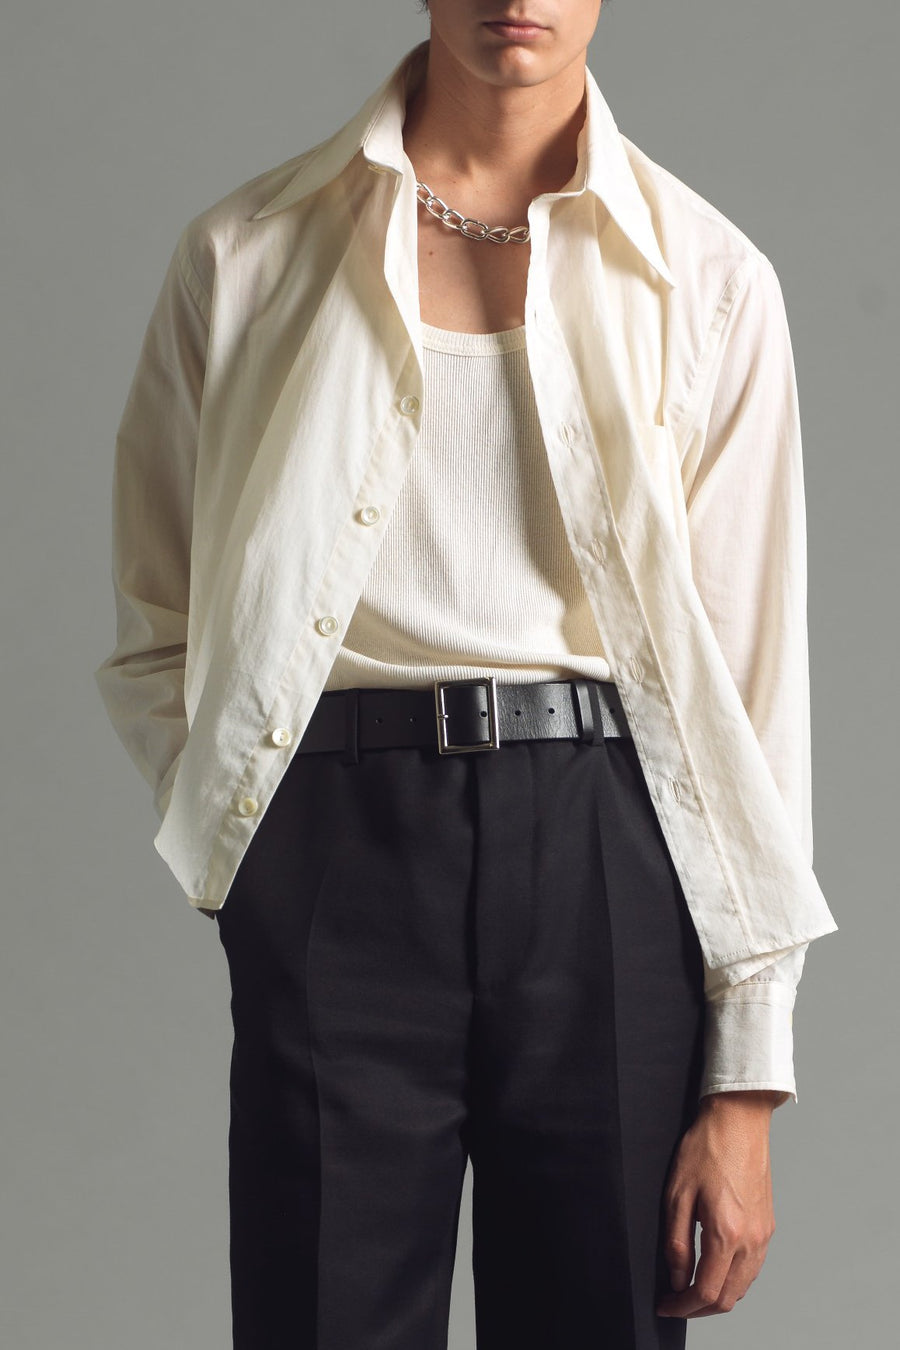 Neu Classic Shirt | Antique White - SECOND/LAYER Inc.